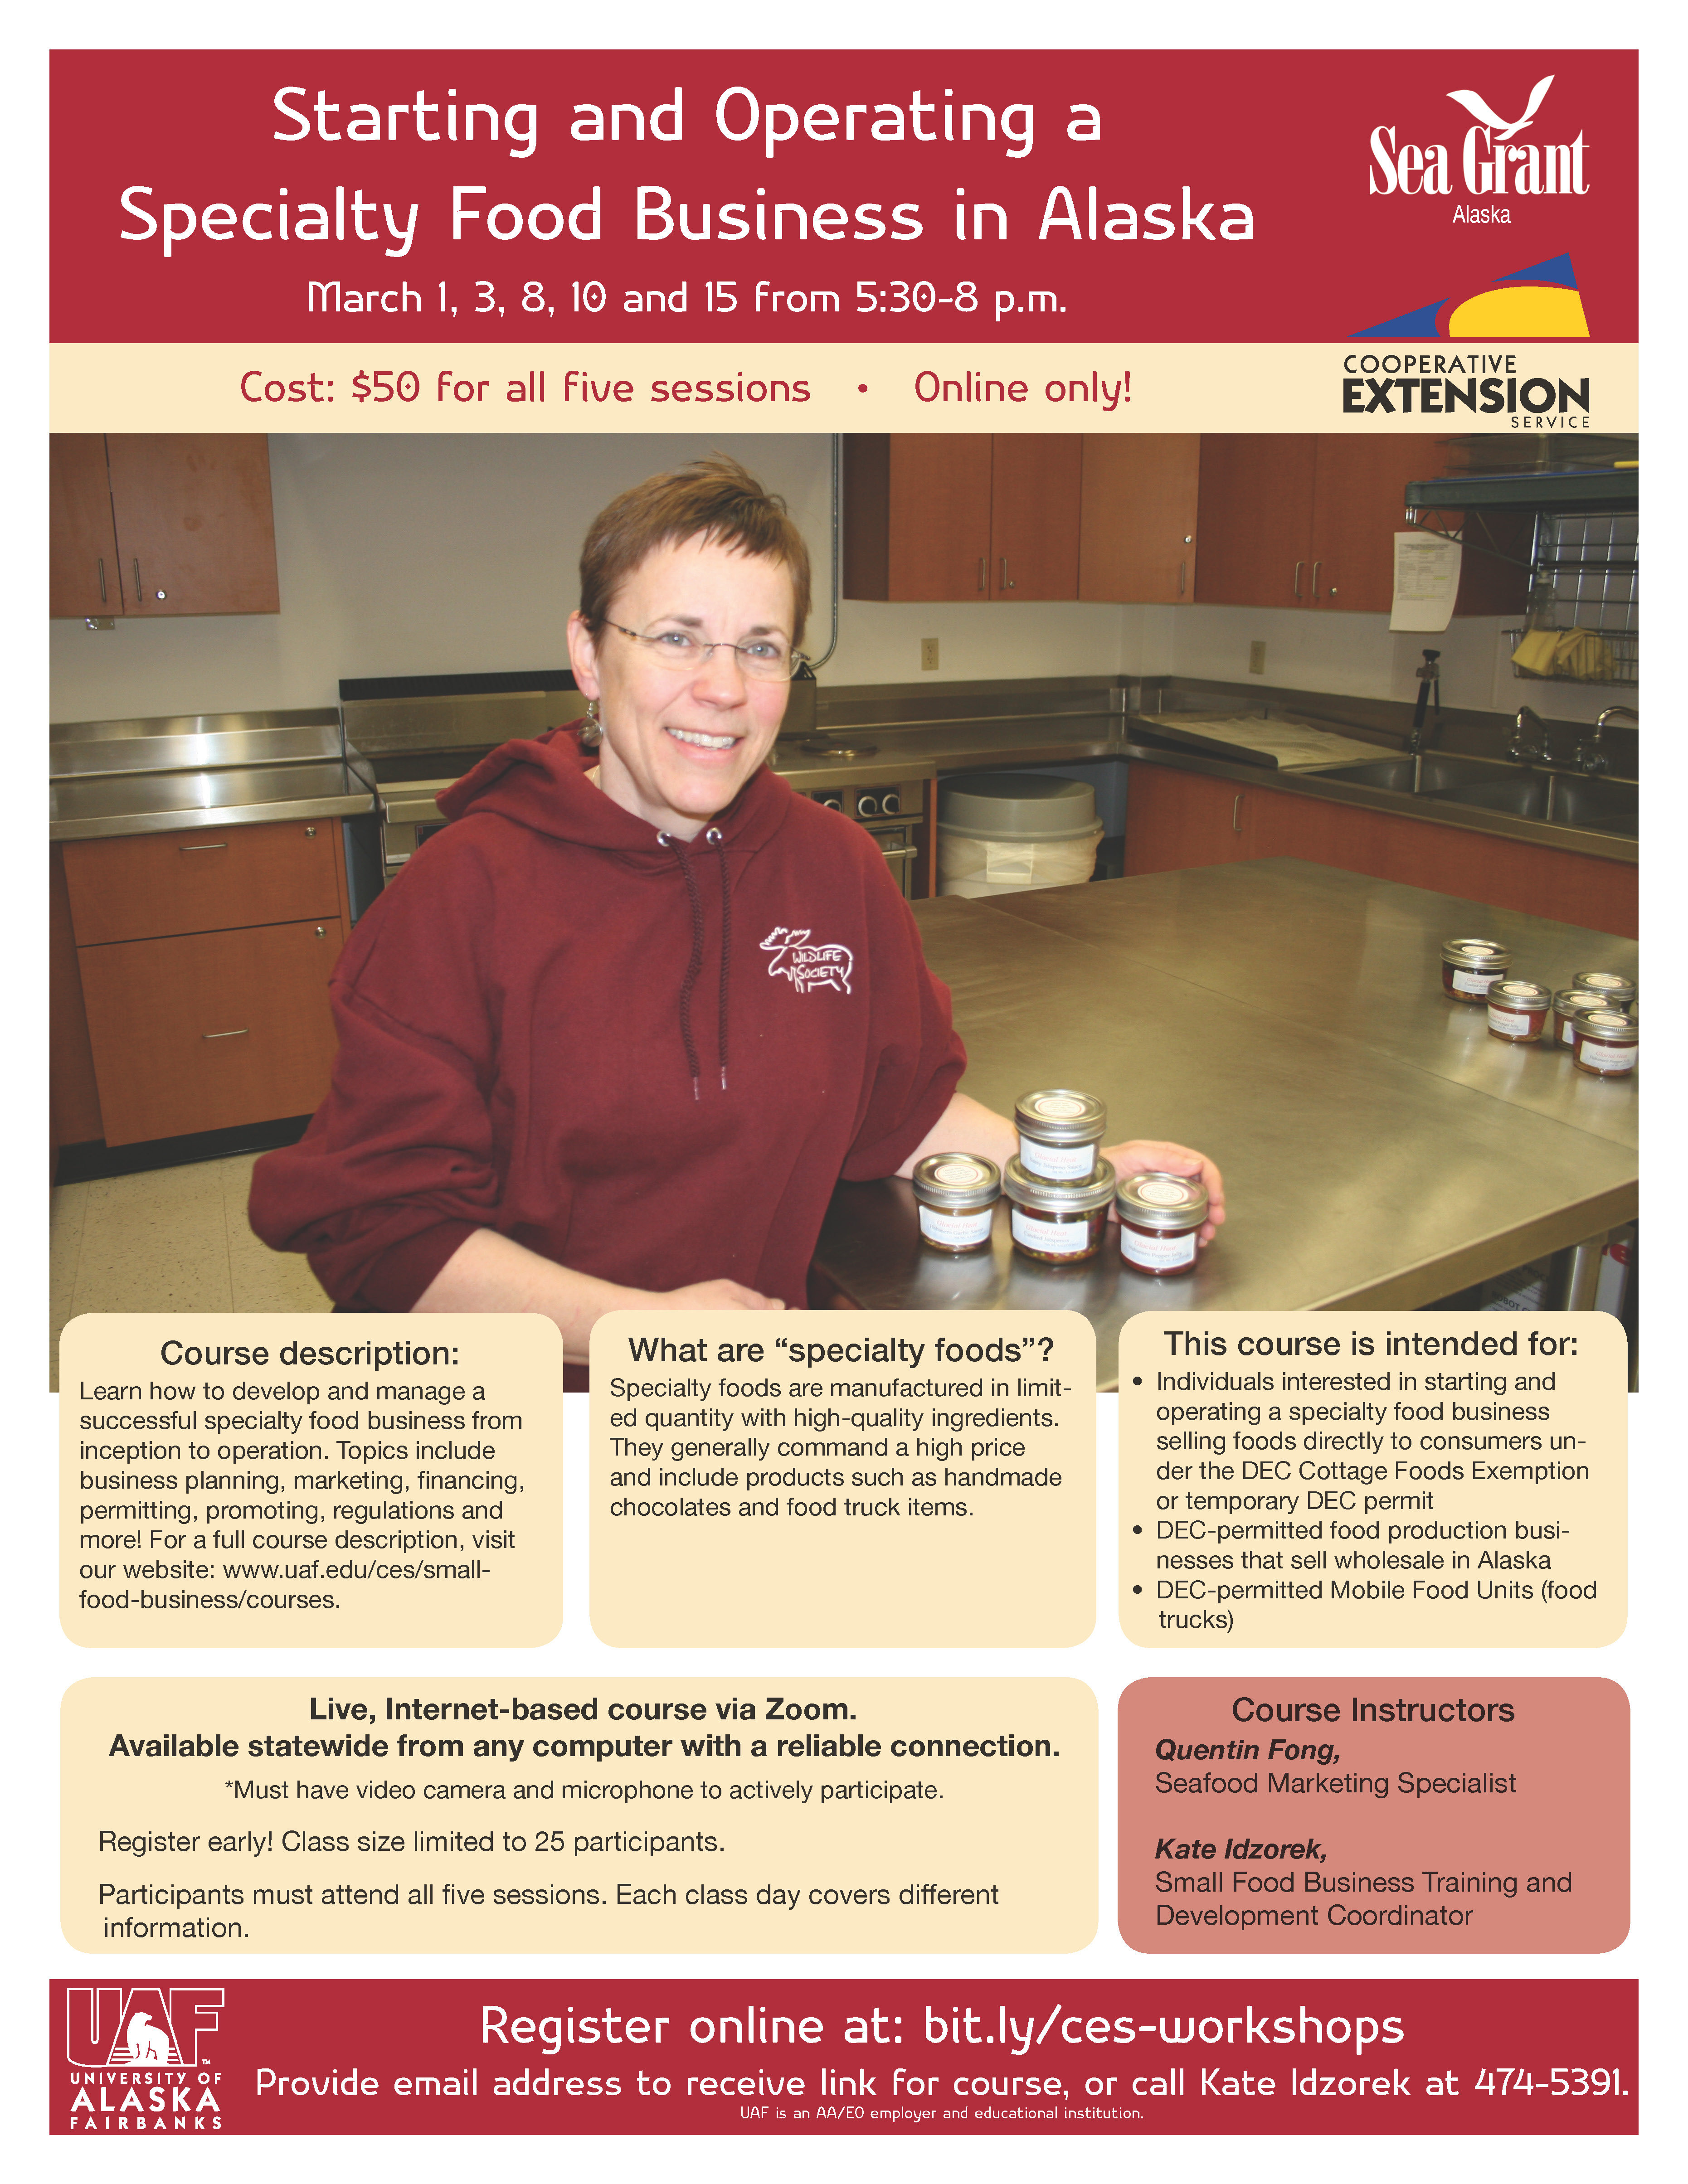 Specialty food business March 2016